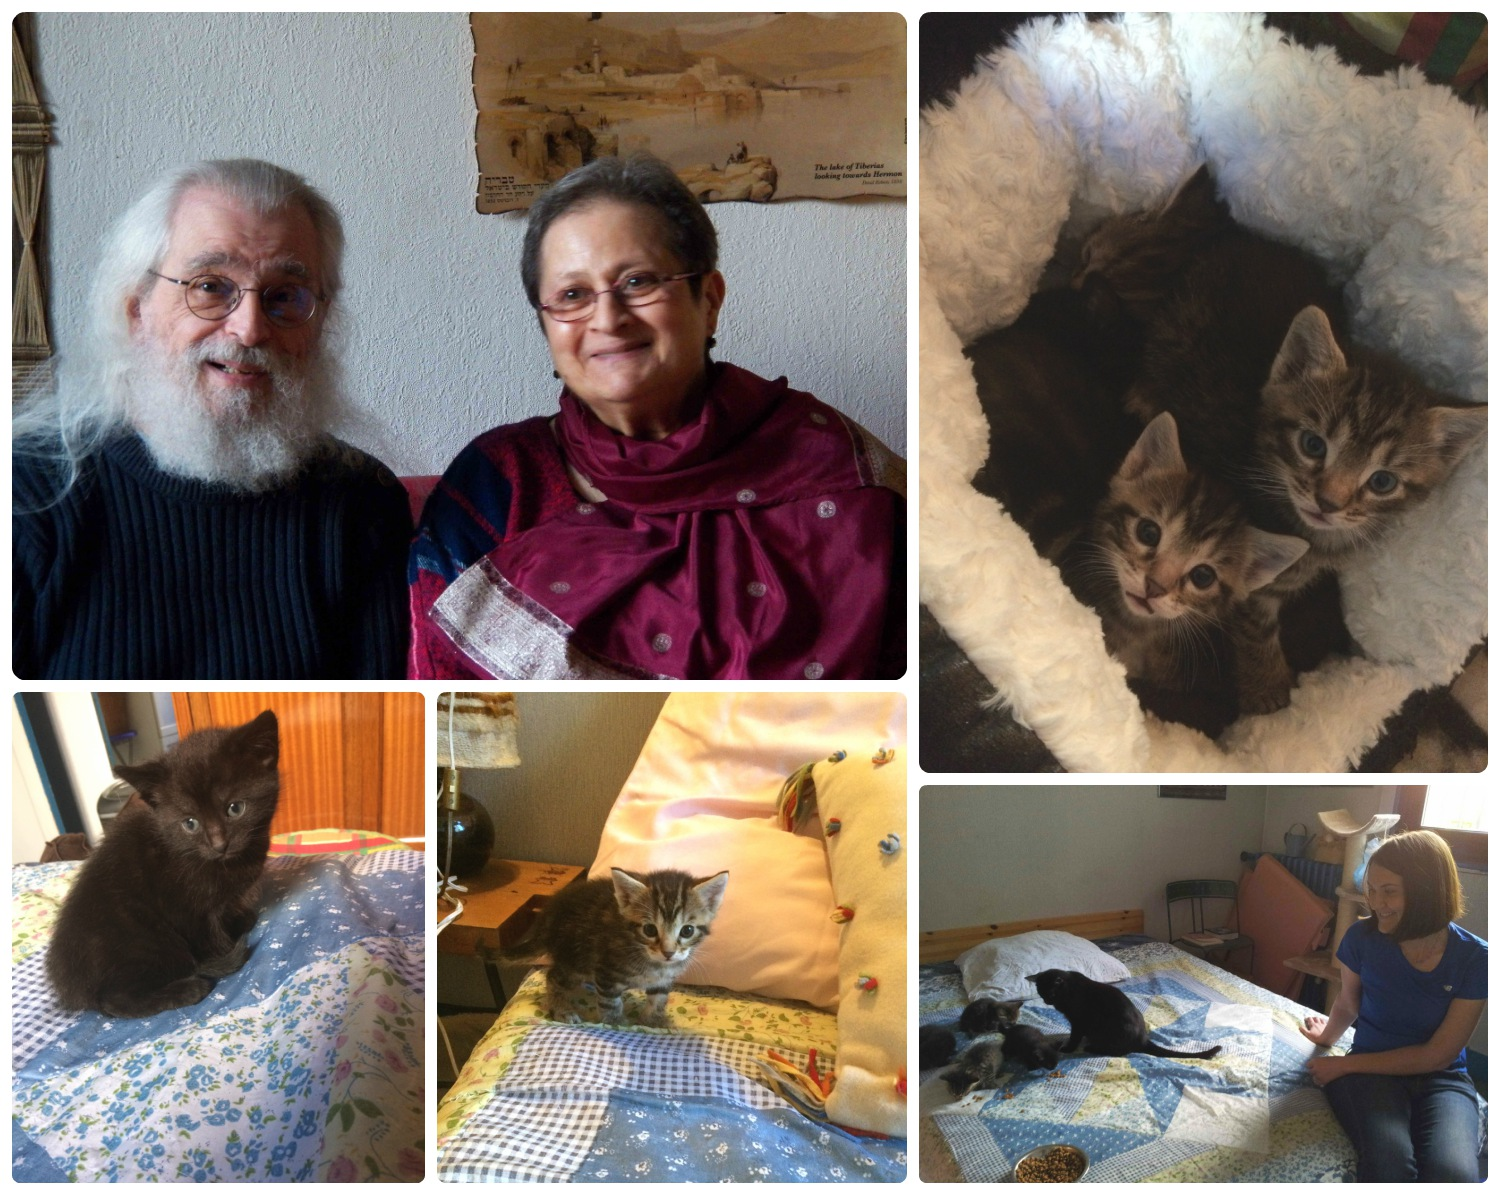 Clockwise (from the top): Homeowners and friends - Daniel and Nicole, the curious kittens in their bed, Shannon with the kittens and their mama as they ate their first solid food, one of the adventurous kittens who climbed on the bed, the solid black kitten just like its mama.